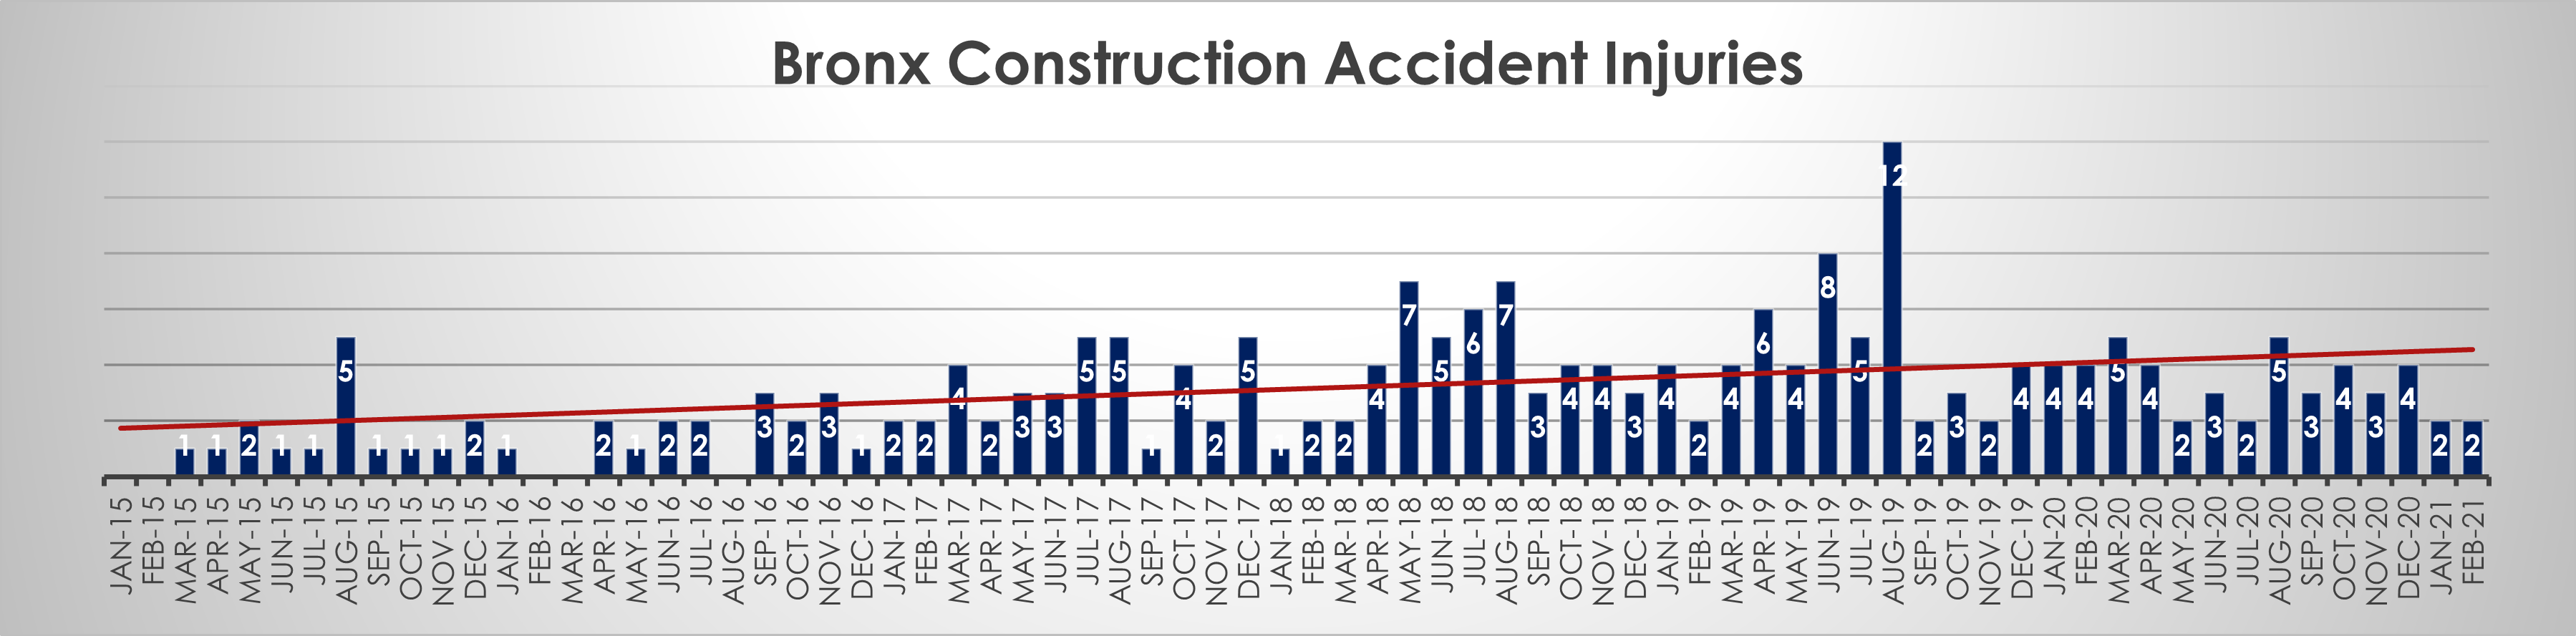 Bronx construction accident injuries February 21